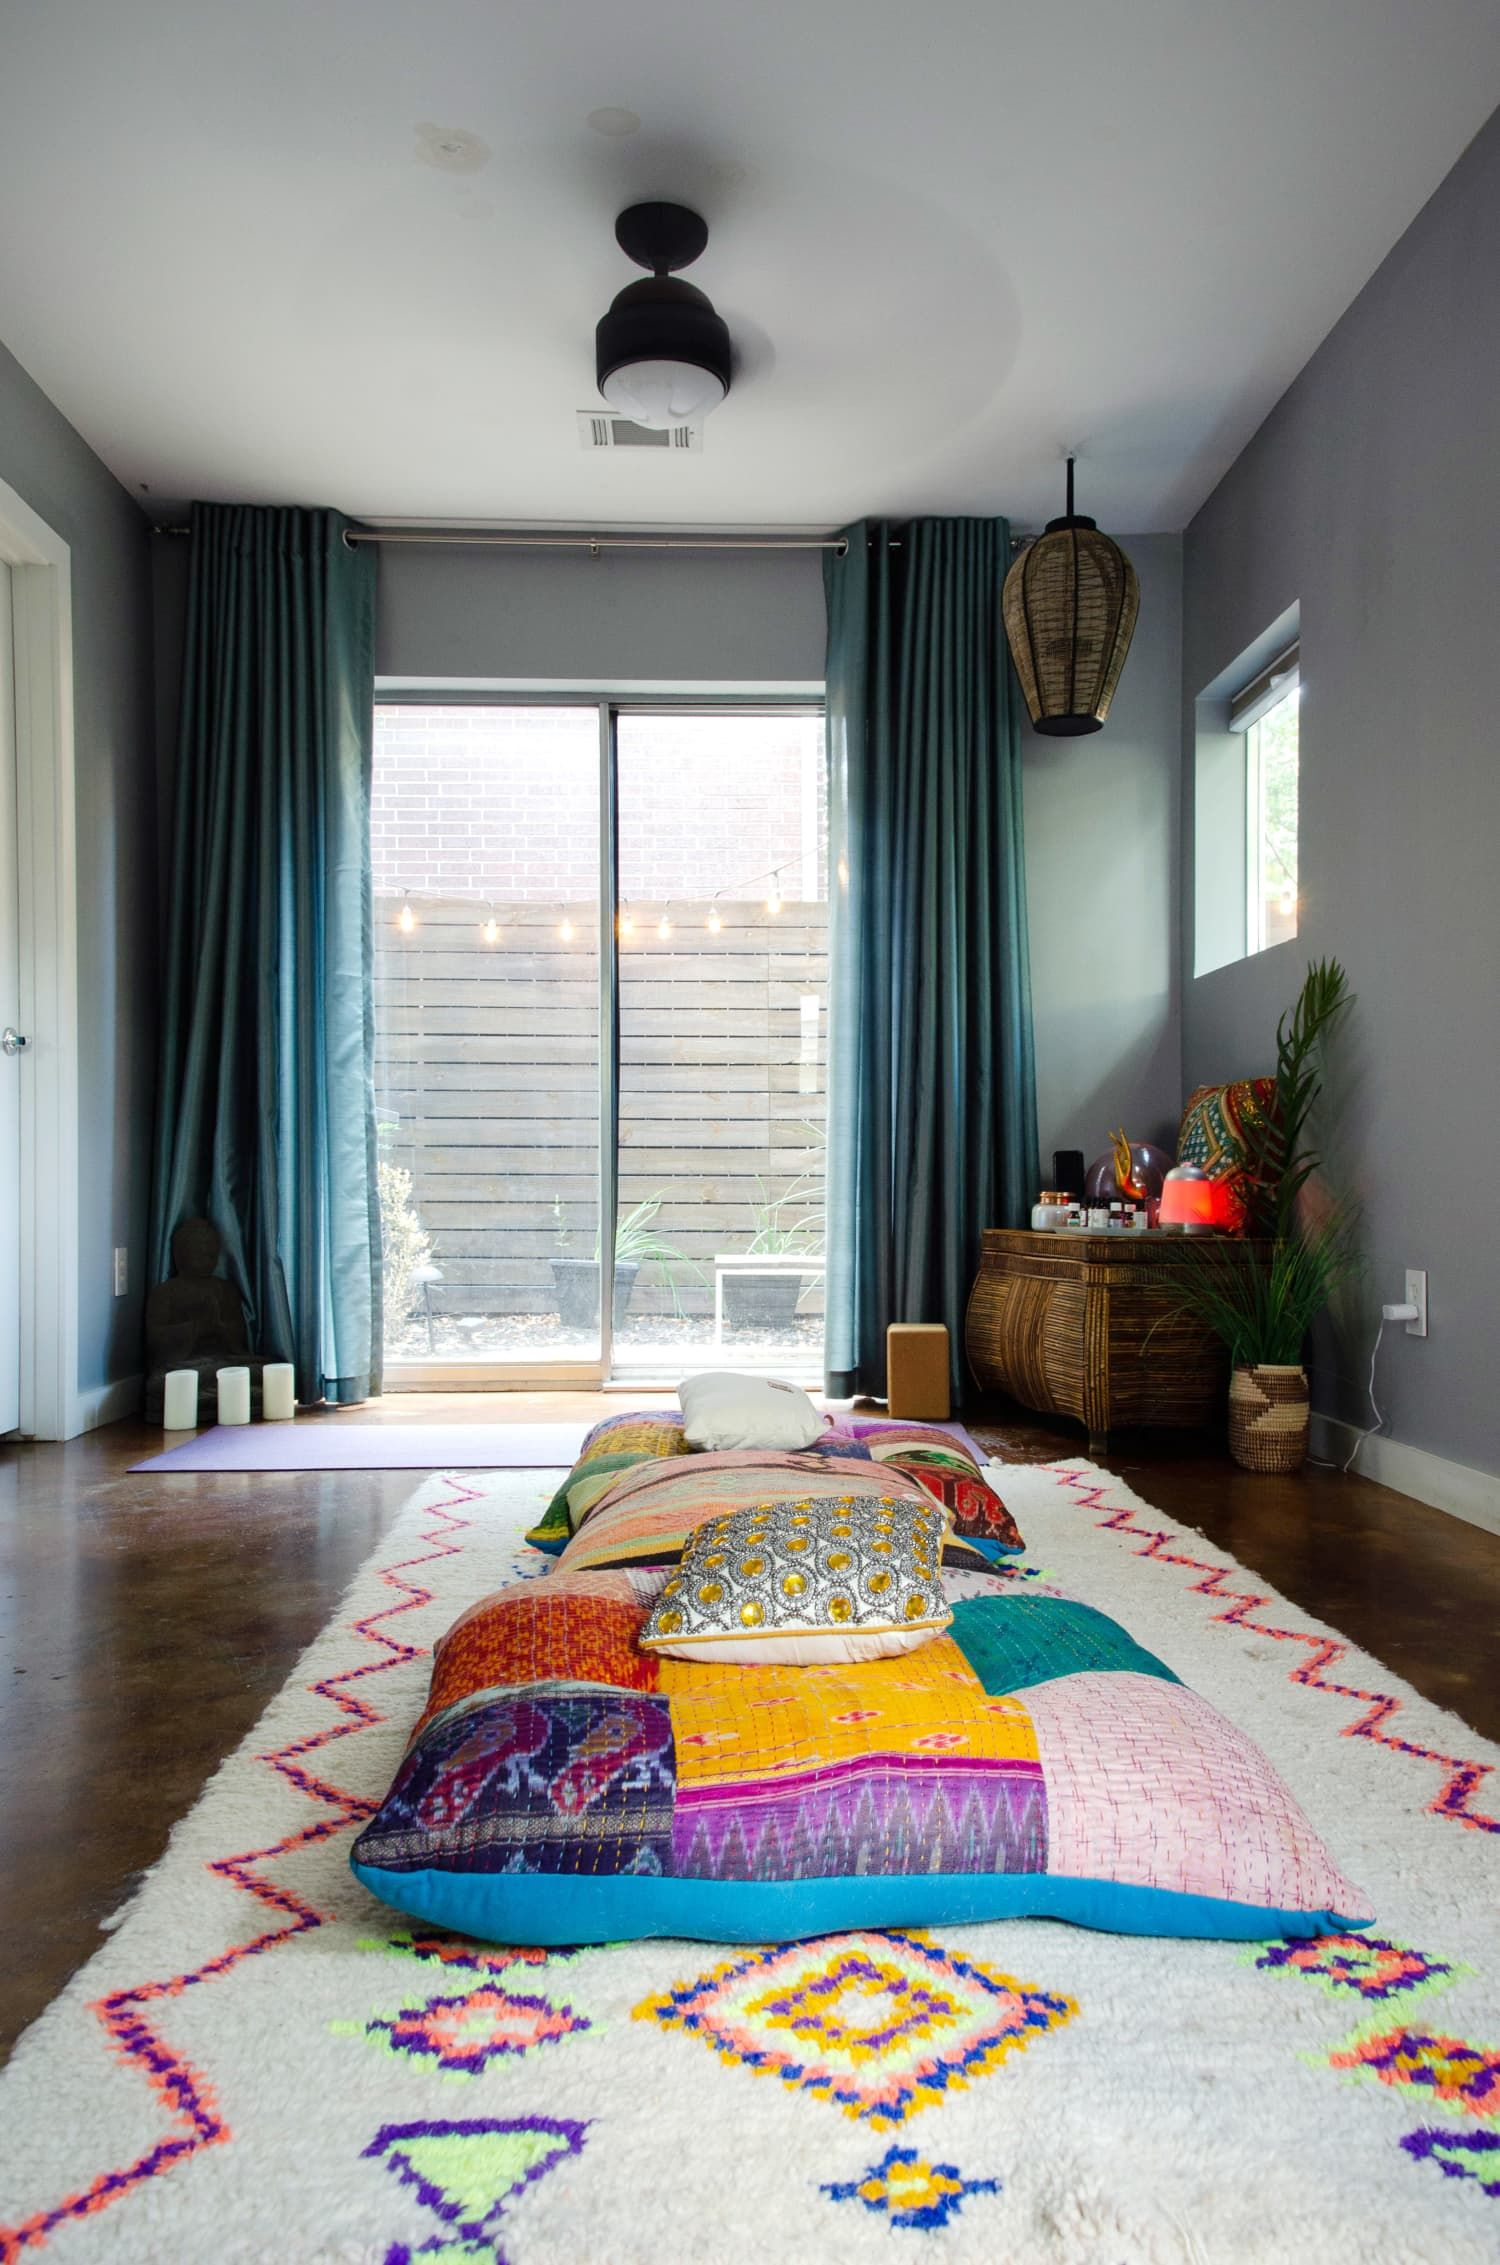 Here S Why You Need A Zen Den And How To Make One In A Small Space Small Spaces Trending Decor Houston Houses